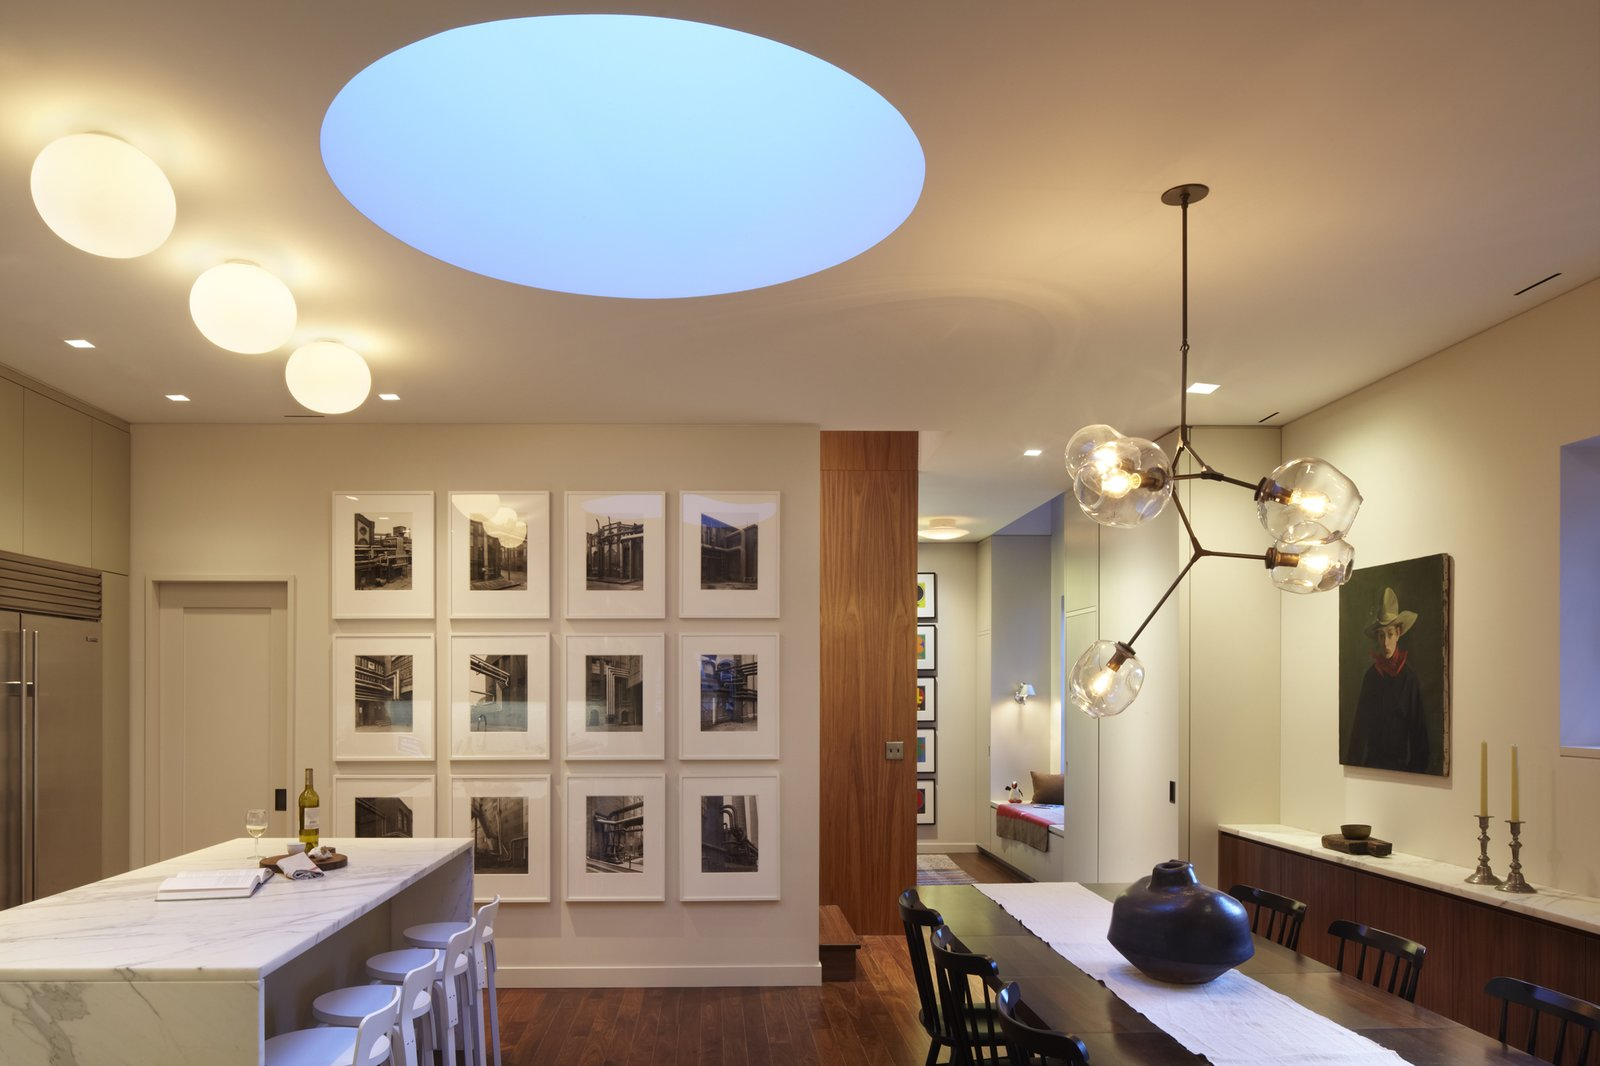 This photo shows the changing color temperature of the drum skylight.  Here at dusk when the light turns a beautiful blue.  The photo also highlights our use of multiple styles of architectural lighting: tape-in recessed LED downlight, surface mounted and pendent fixtures combine to create a warm modern environment. White Street Residence by pulltab